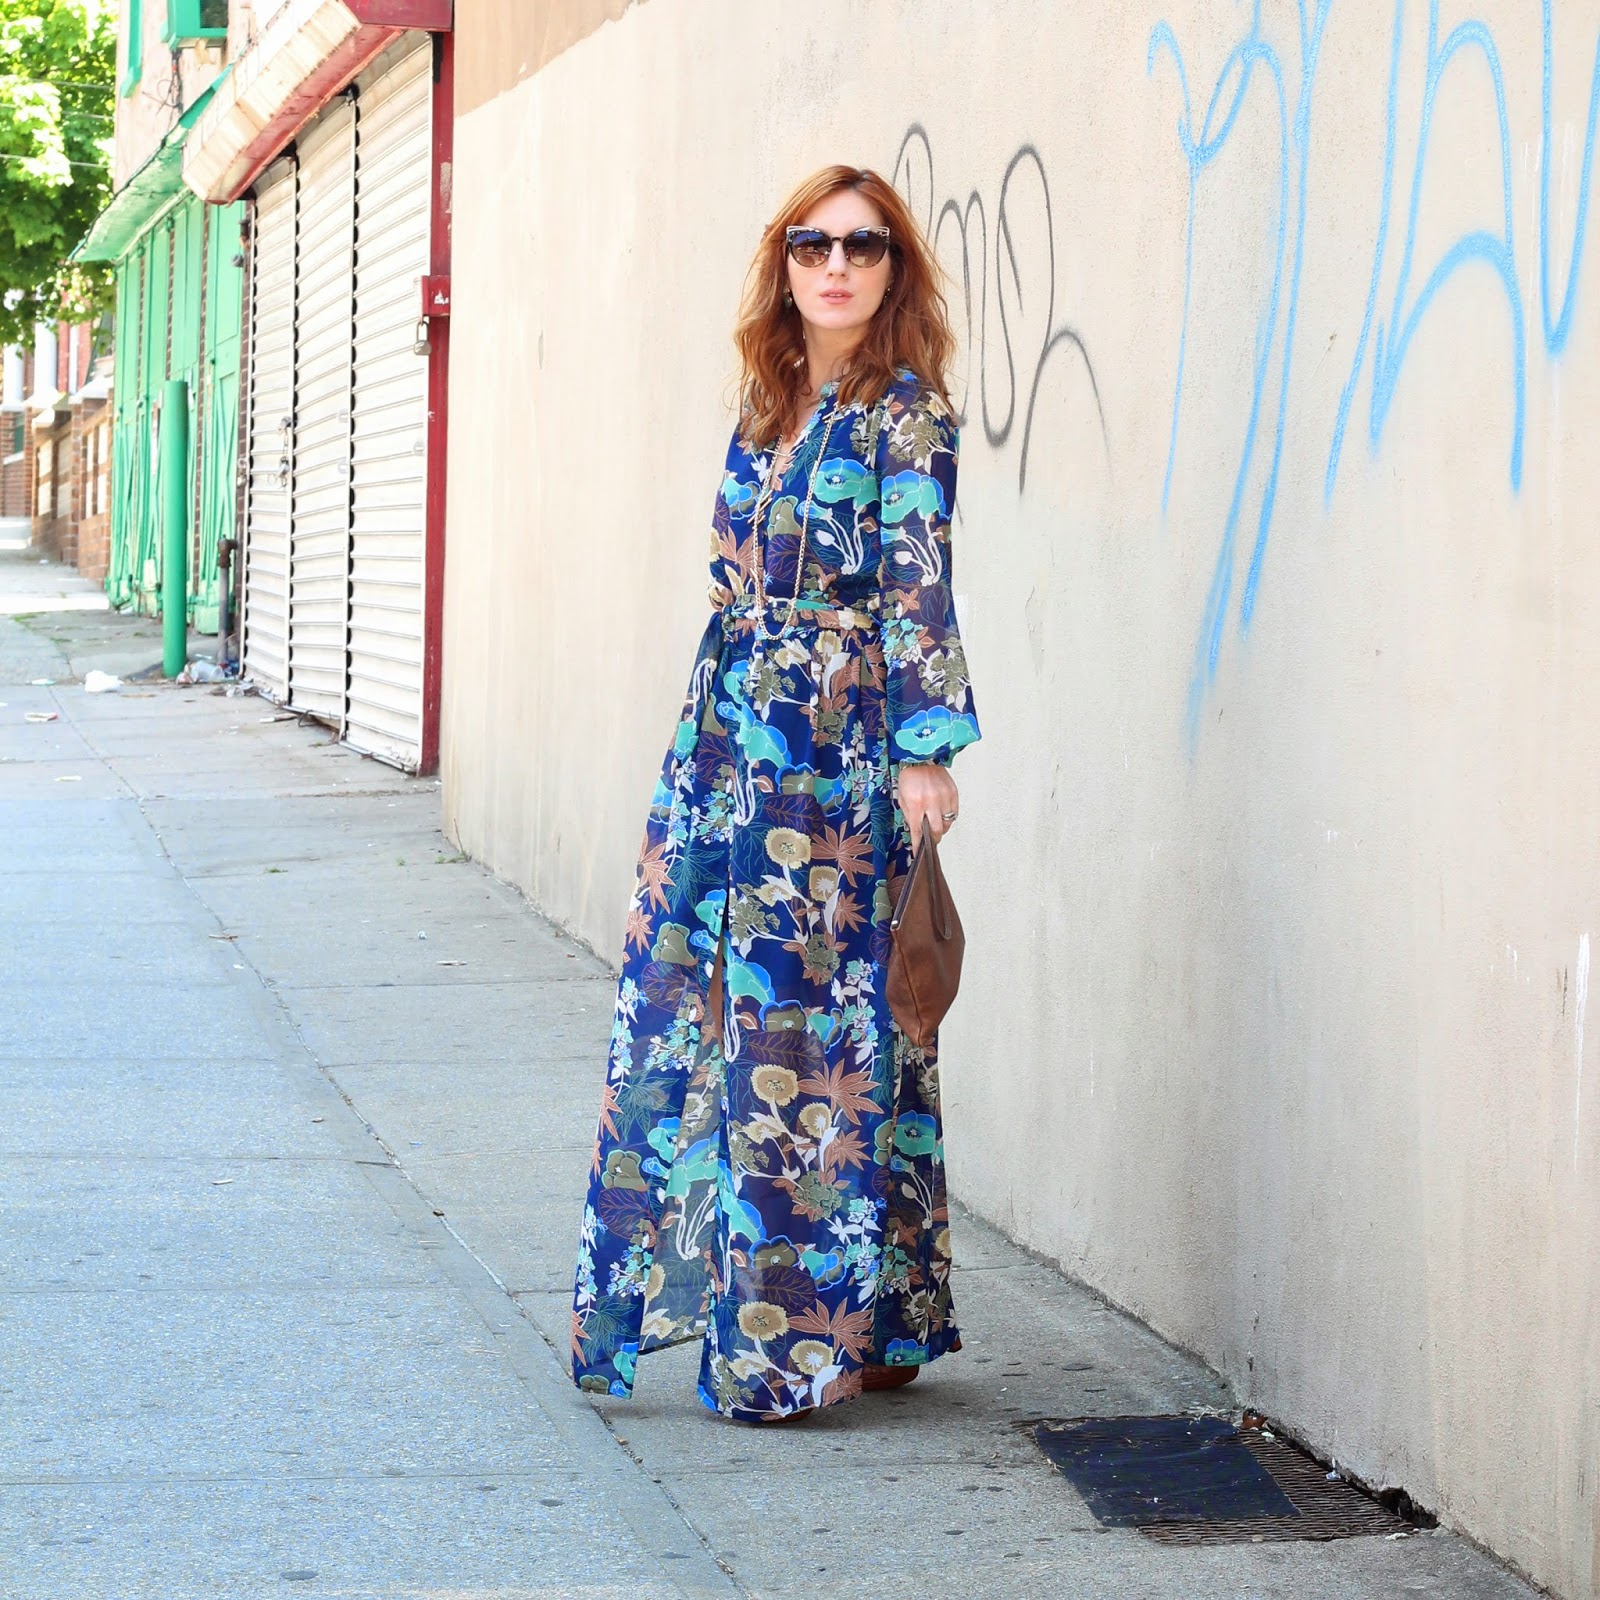 H&M Maxi Dress, H&M Summer 2015 dresses, maxi dresses, best maxi dresses under $50, megan zietz, tfdiaries, the frugalista diaries, street style, stylish new yorkers